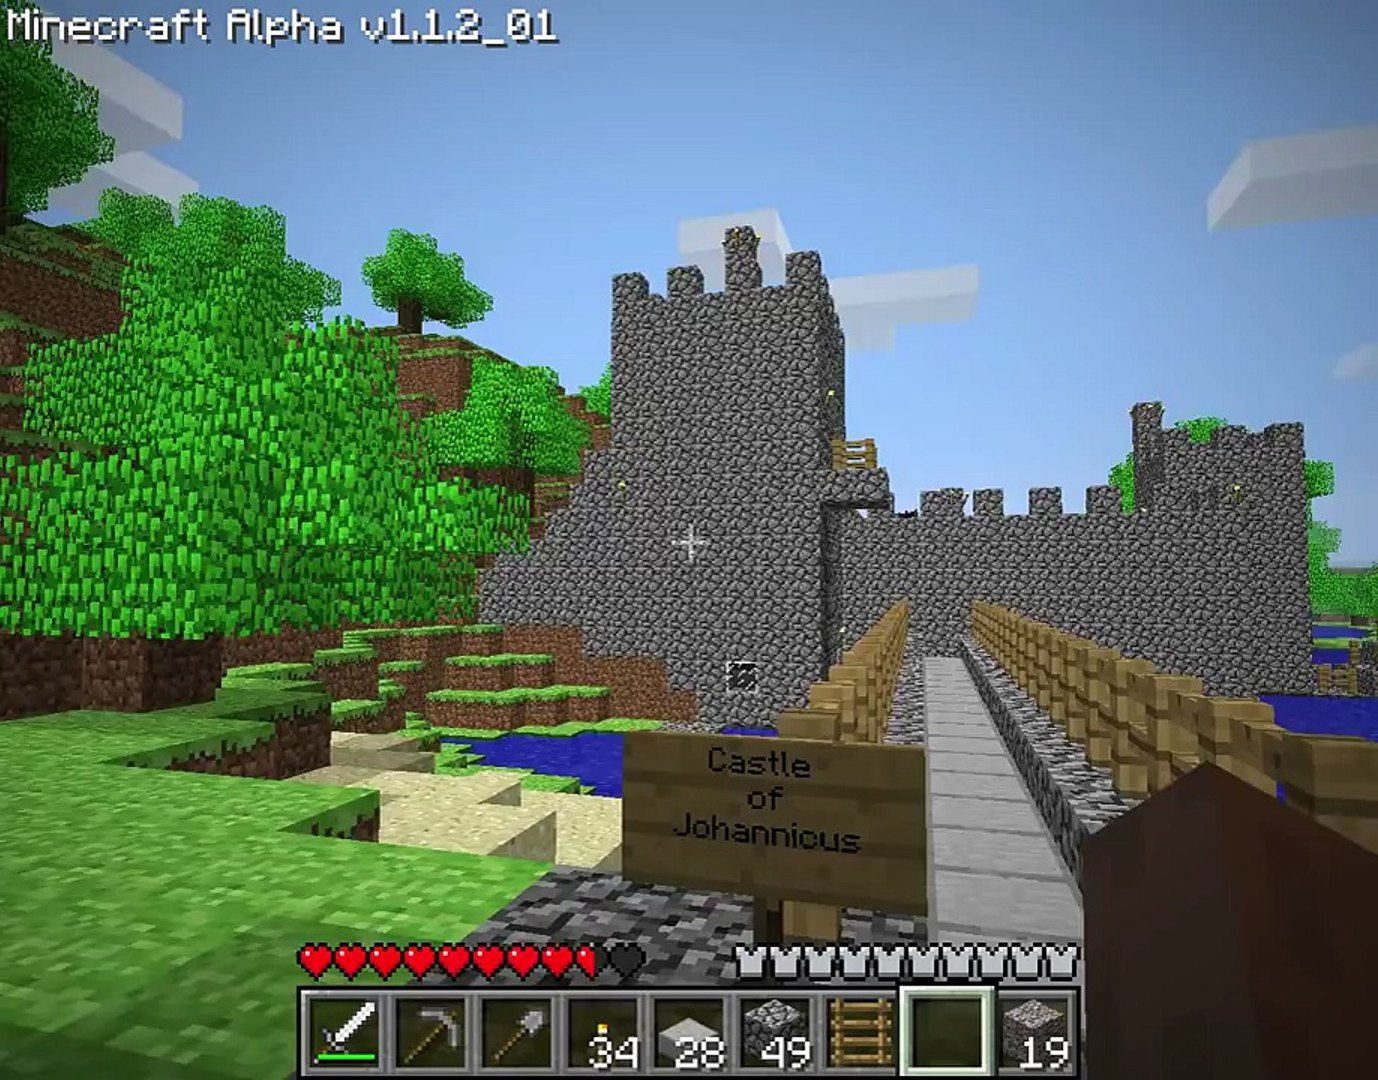 Minecraft Castle Of Johannicus 1 Video Dailymotion